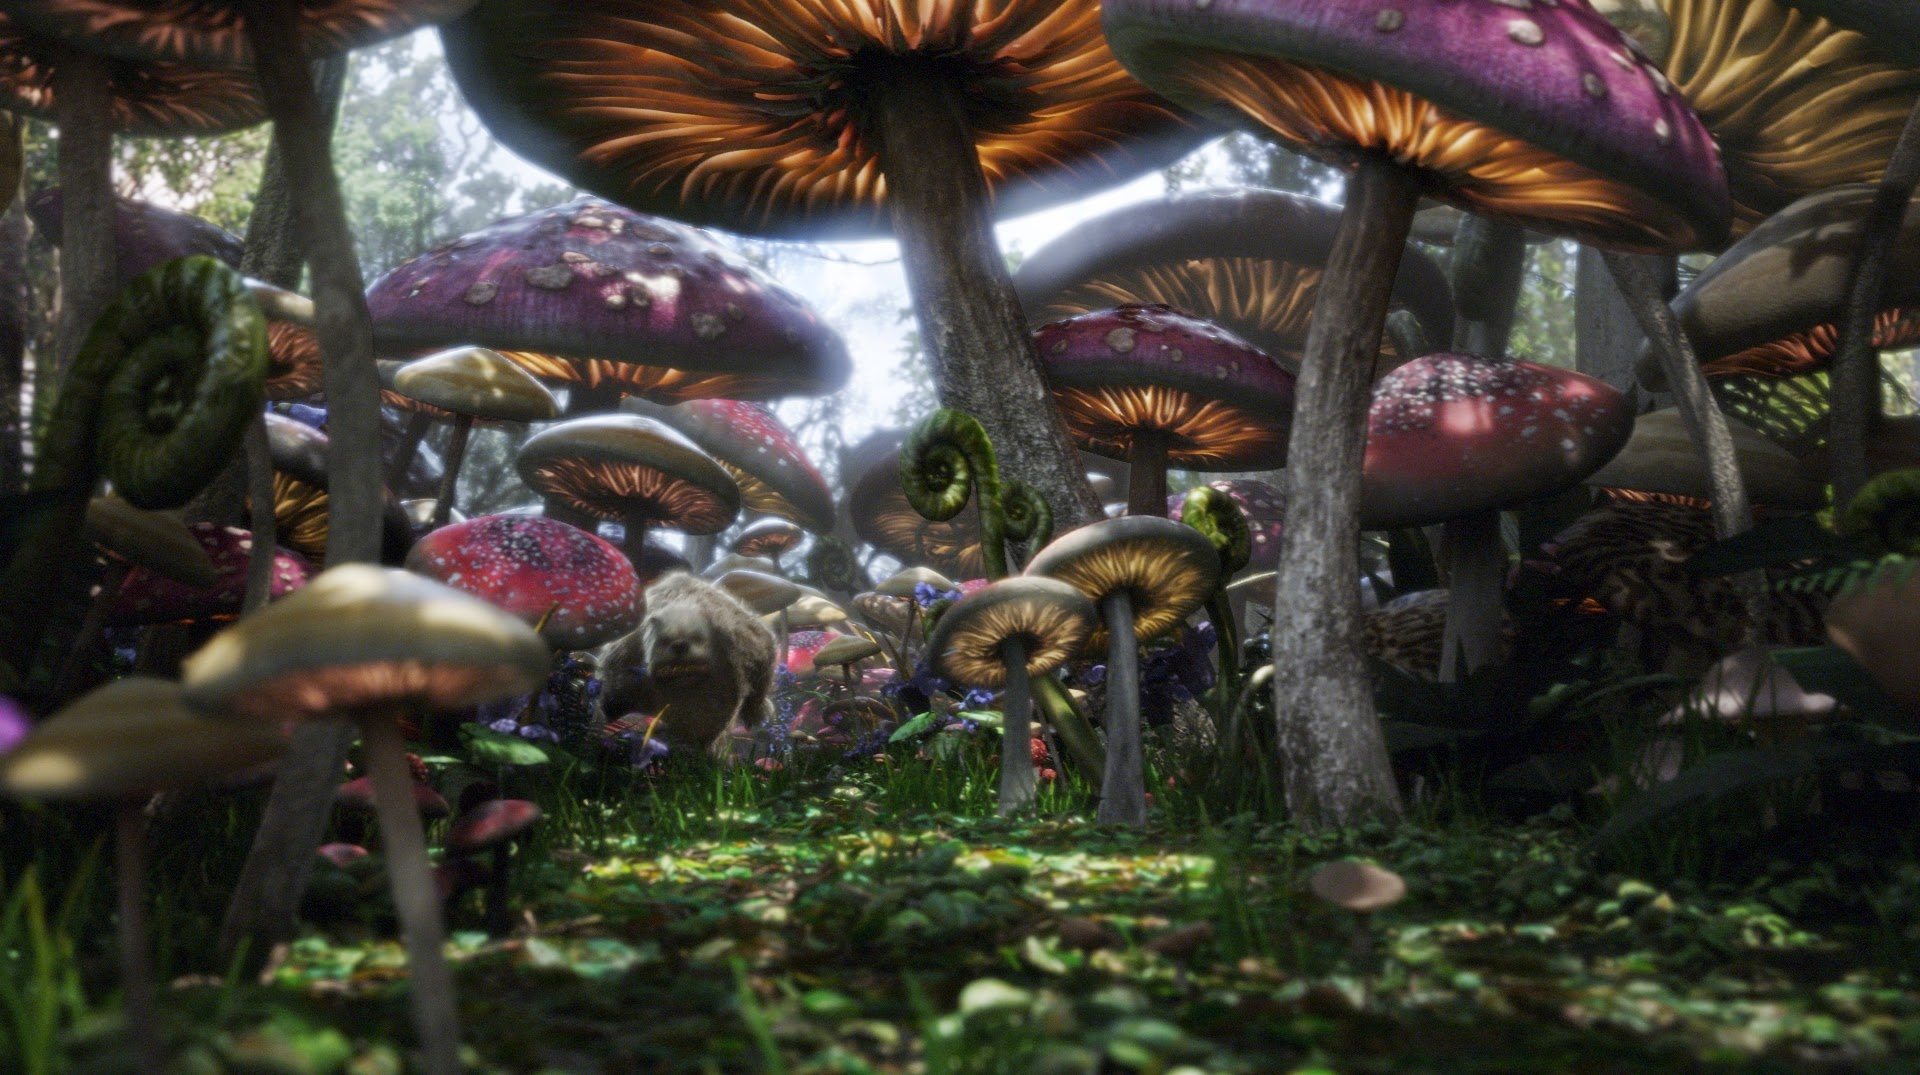 alice-in-wonderland-movie-image-5